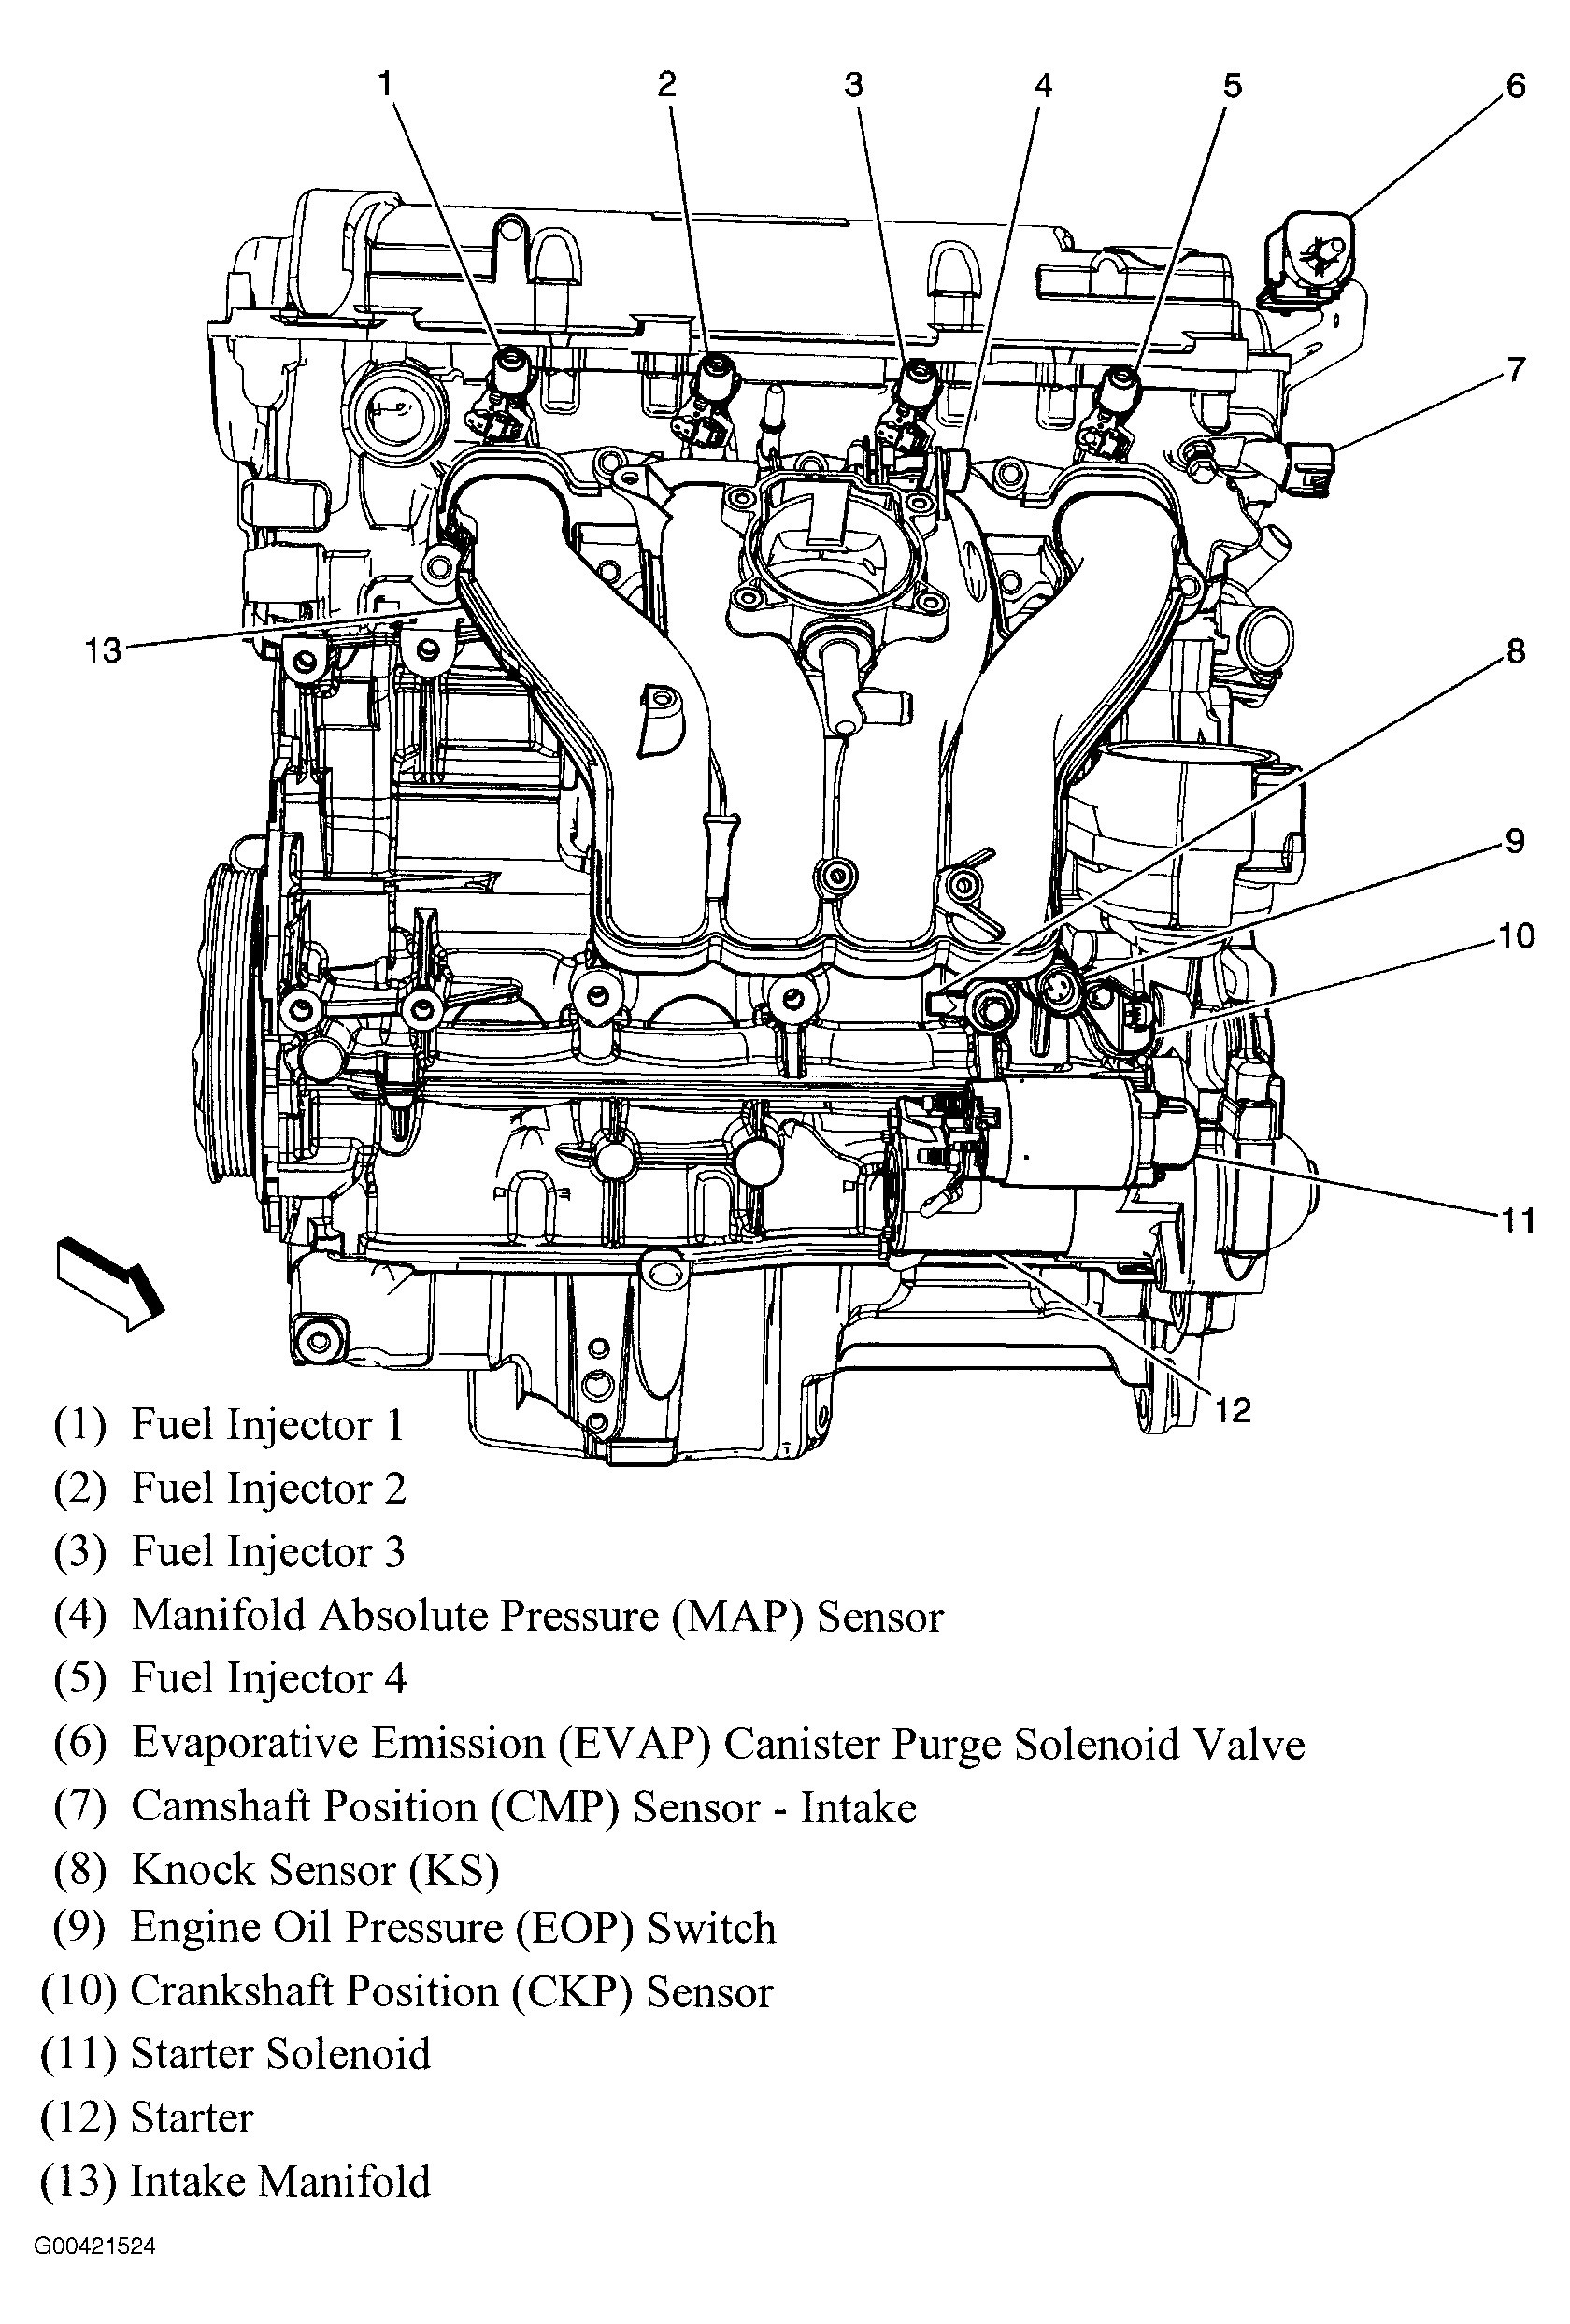 Duramax Engine Diagram Labeled